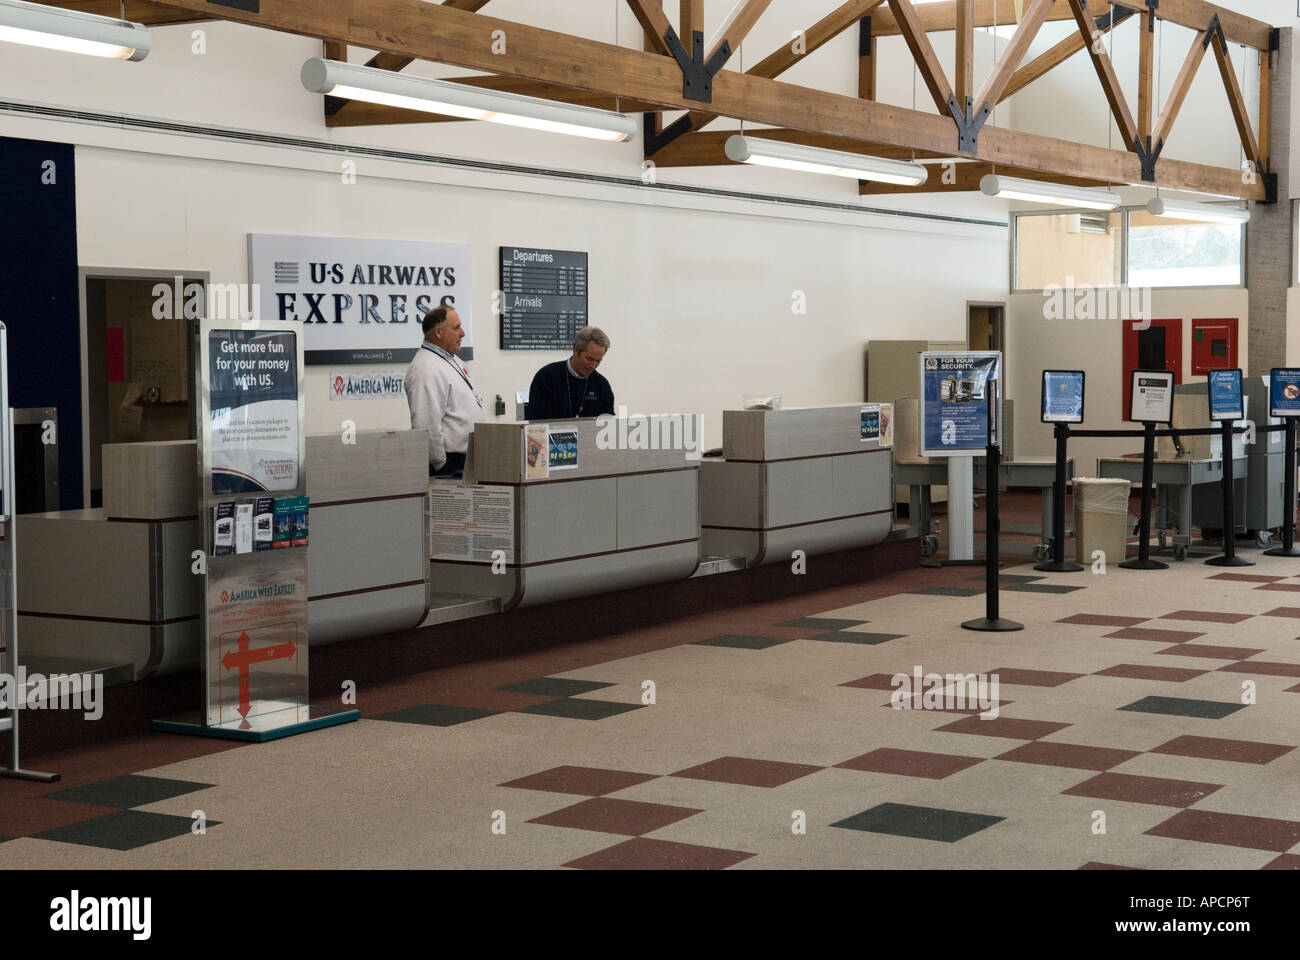 Interior shots of the Flagstaff Arizona airport terminal with     Interior shots of the Flagstaff Arizona airport terminal with airline  employees behind the counter